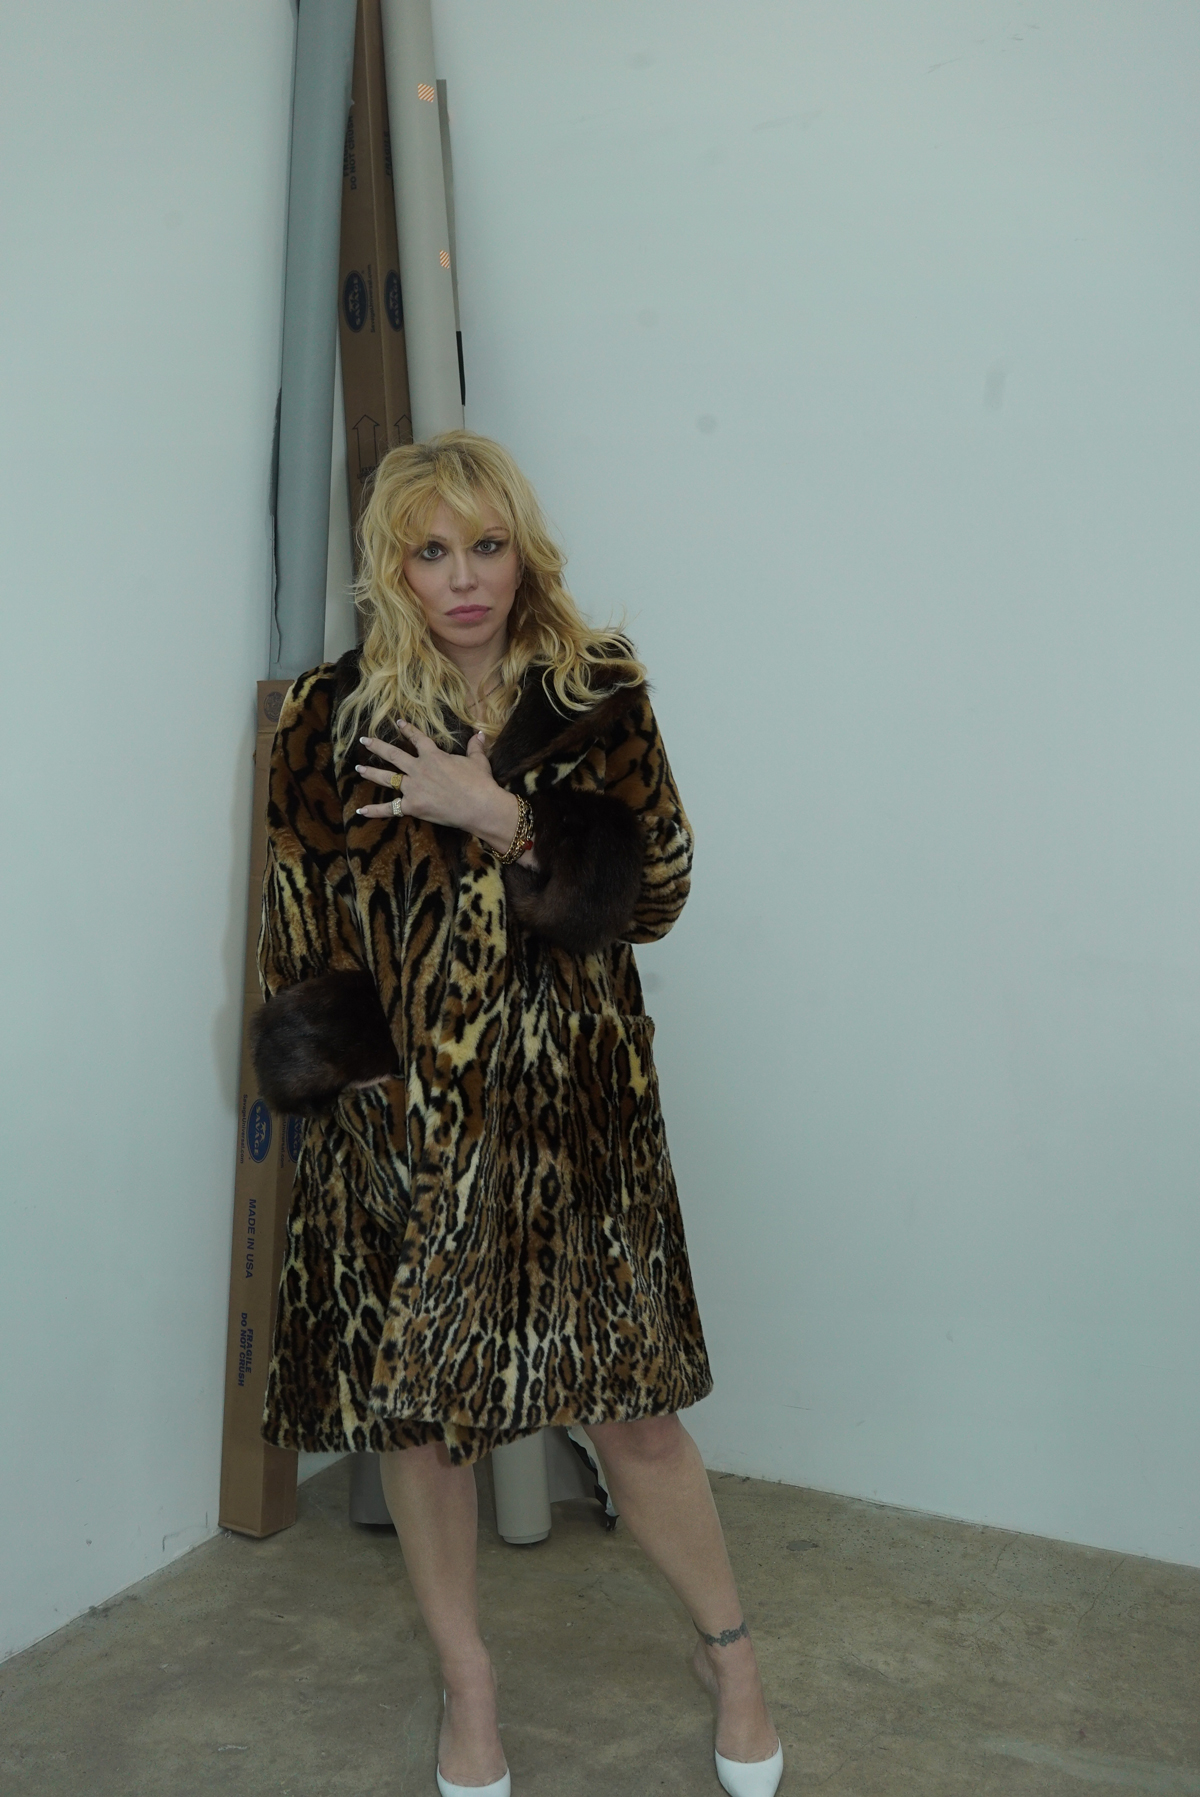 20 Questions for Courtney Love, The Queen of Grunge